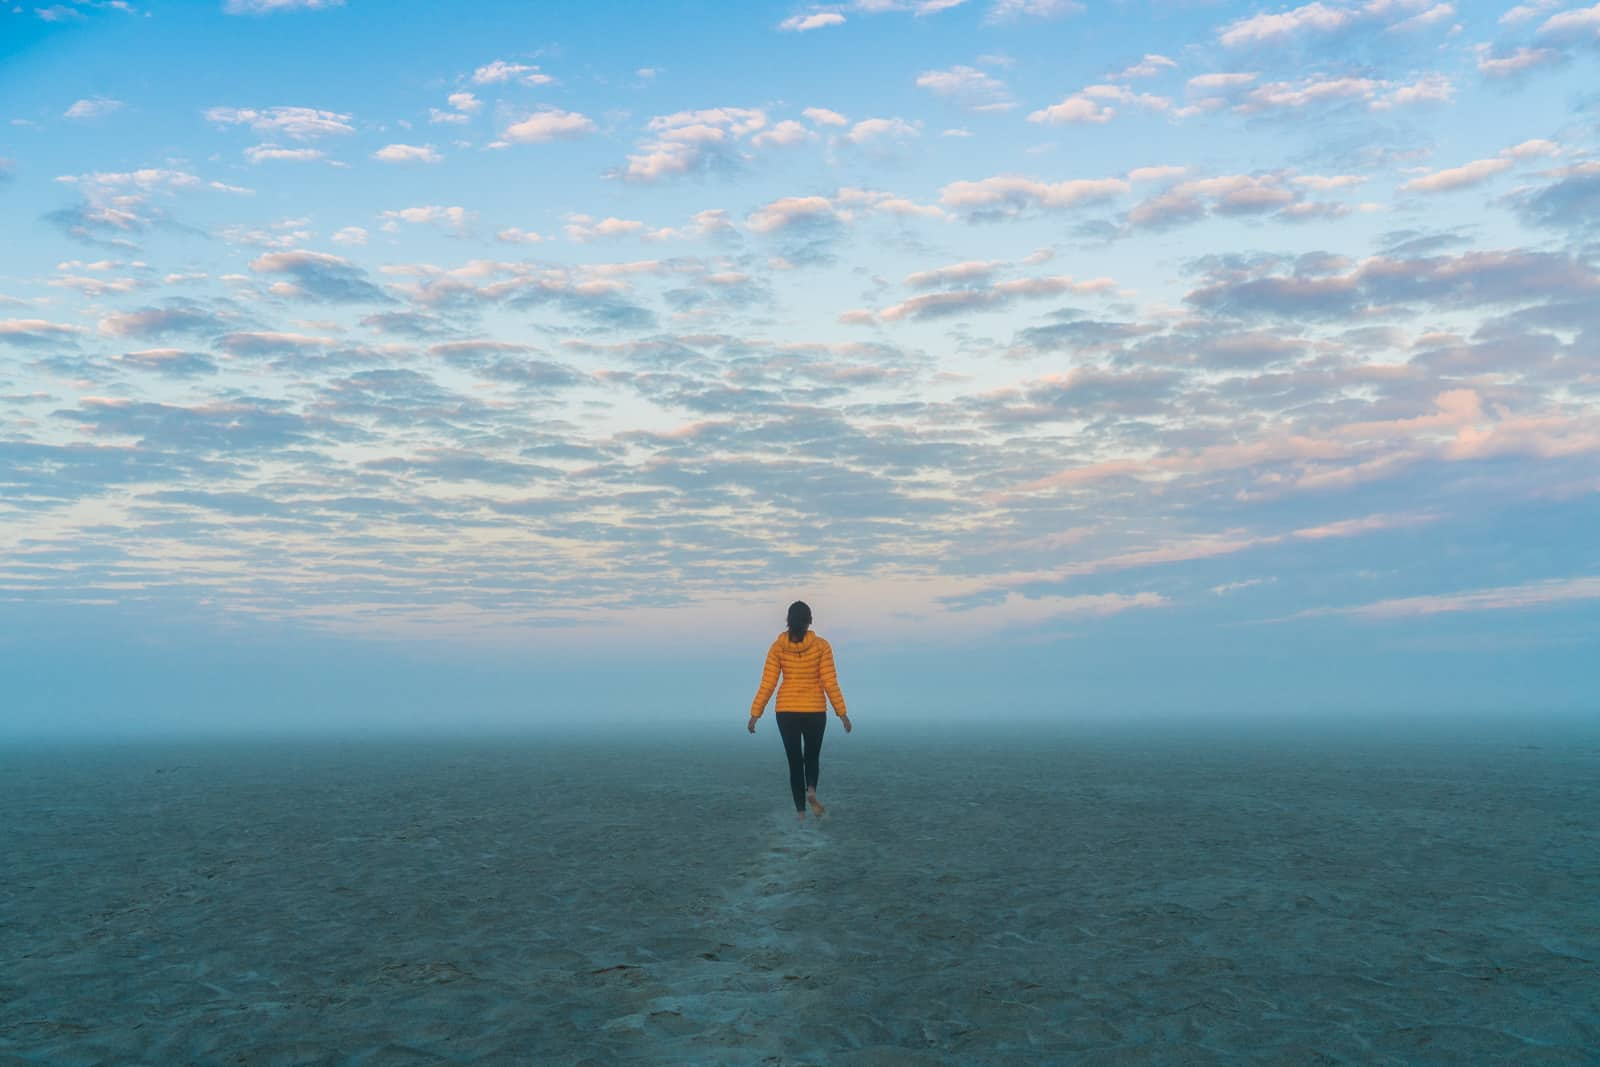 Breaking up on the road - Alex walking into the mist on the Brahmaputra river in Assam, India - Lost With Purpose travel blog